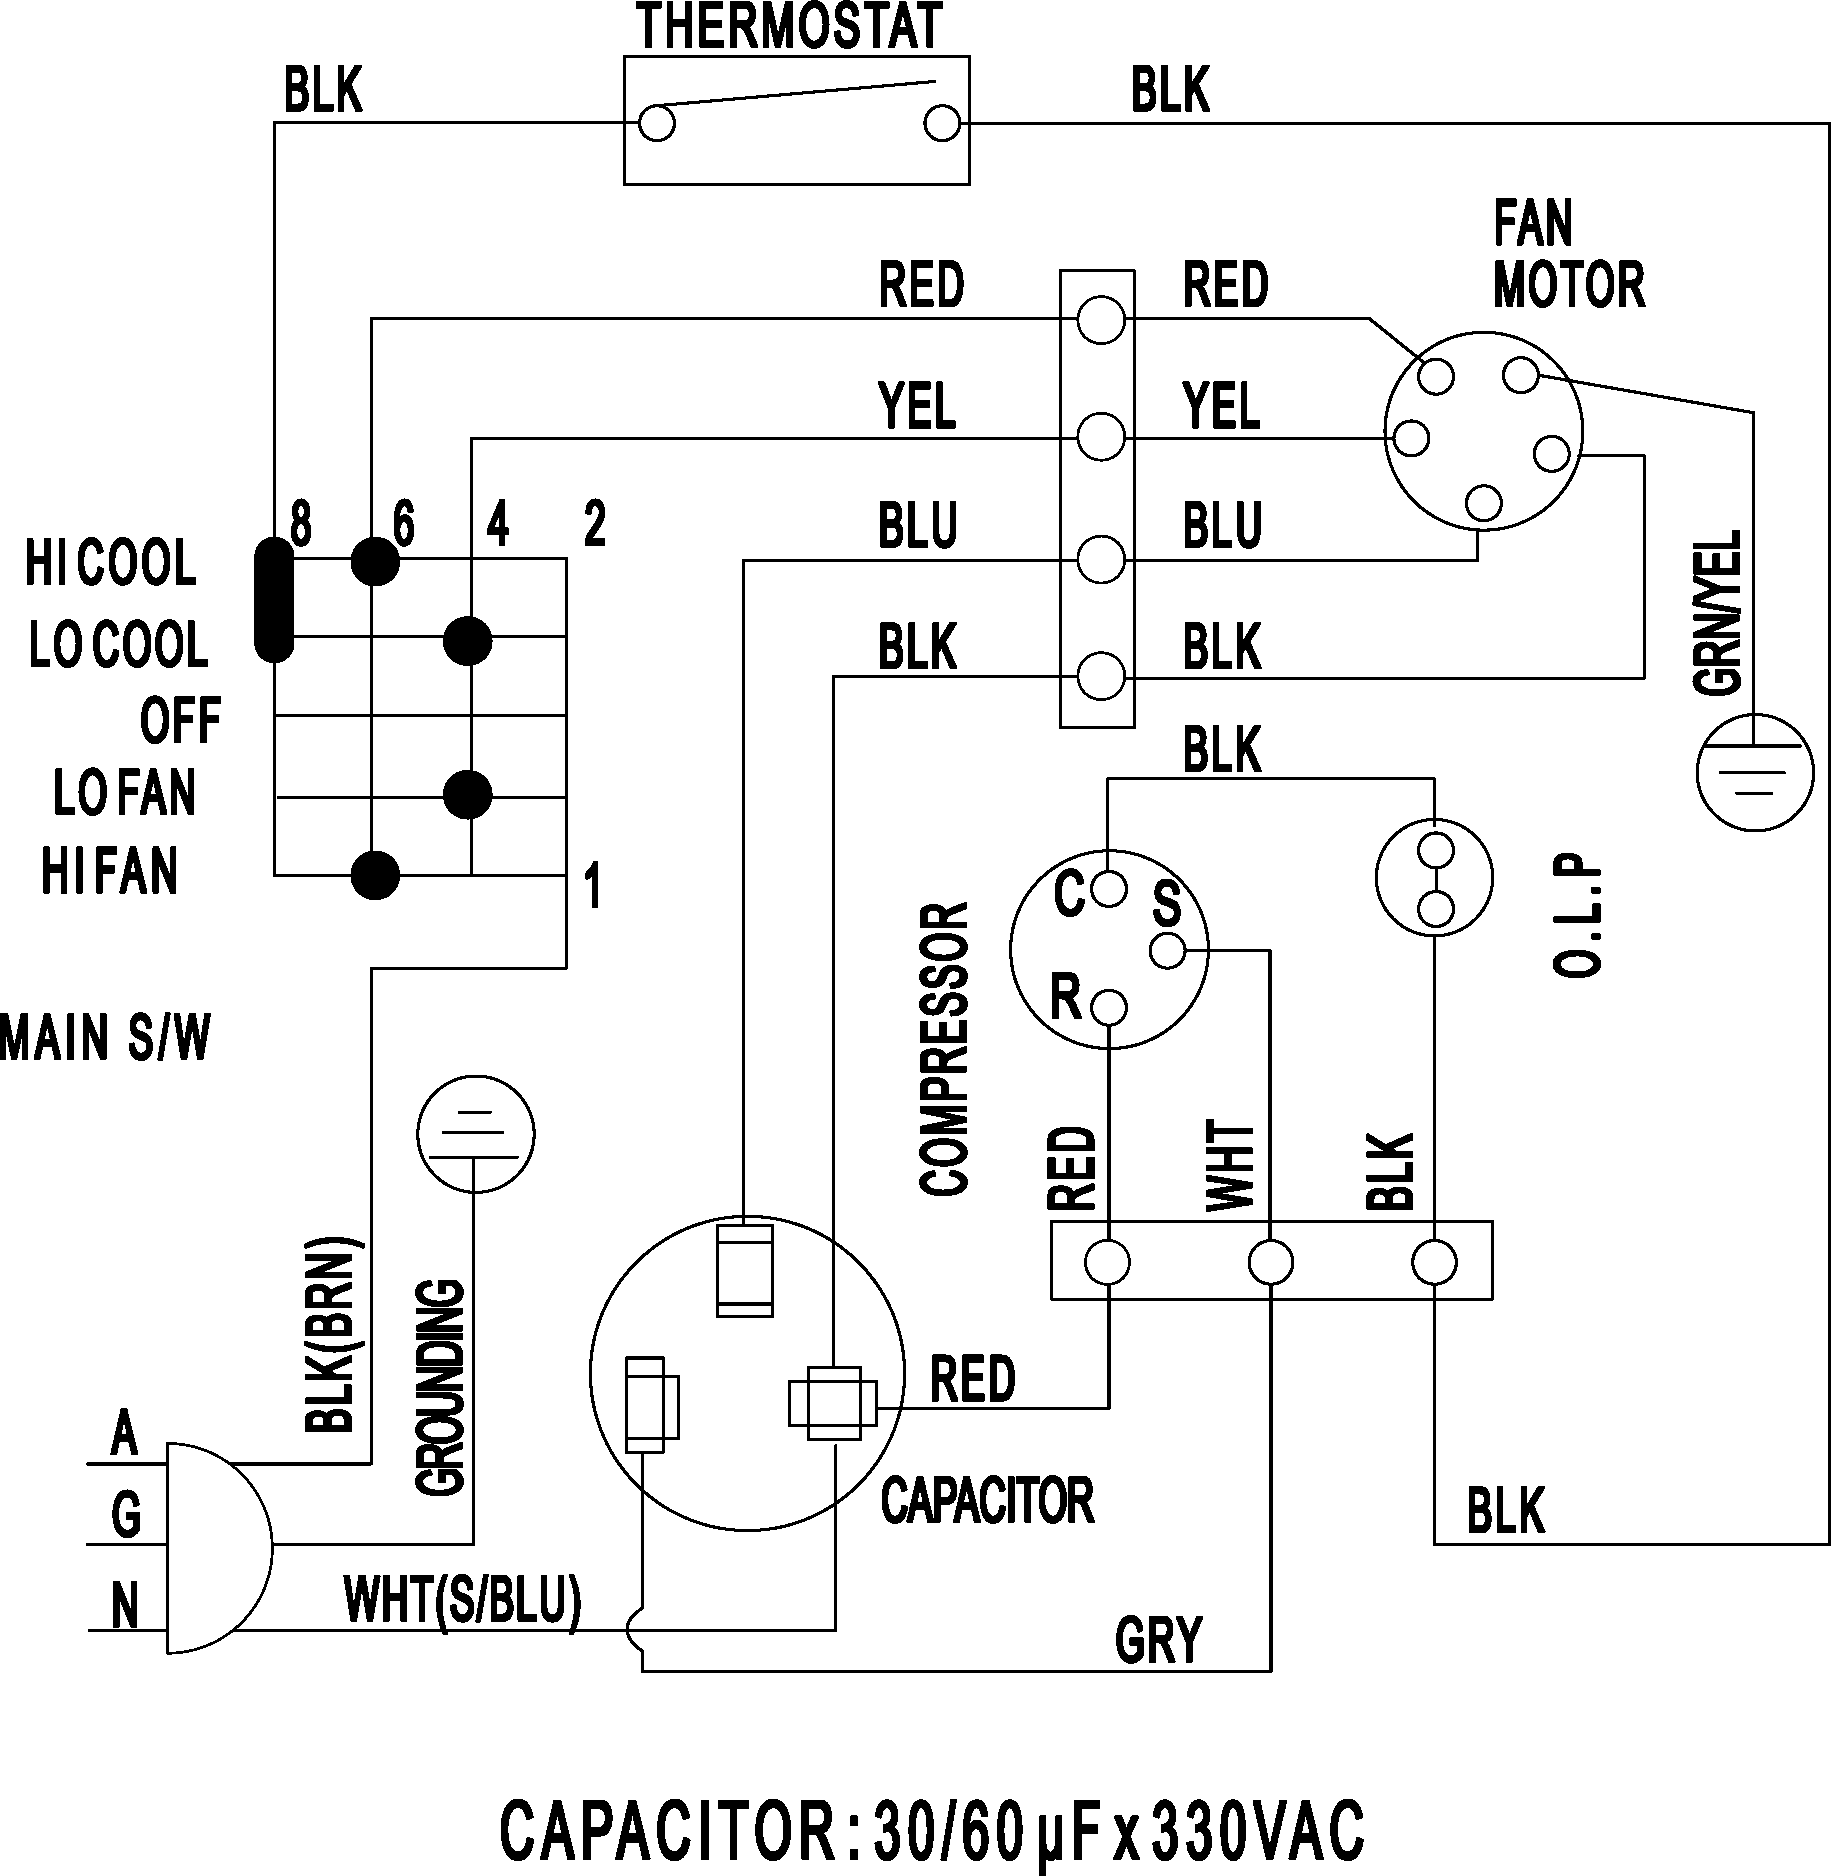 WIRING DIAGRAM Diagram & Parts List for Model aw0529xaa